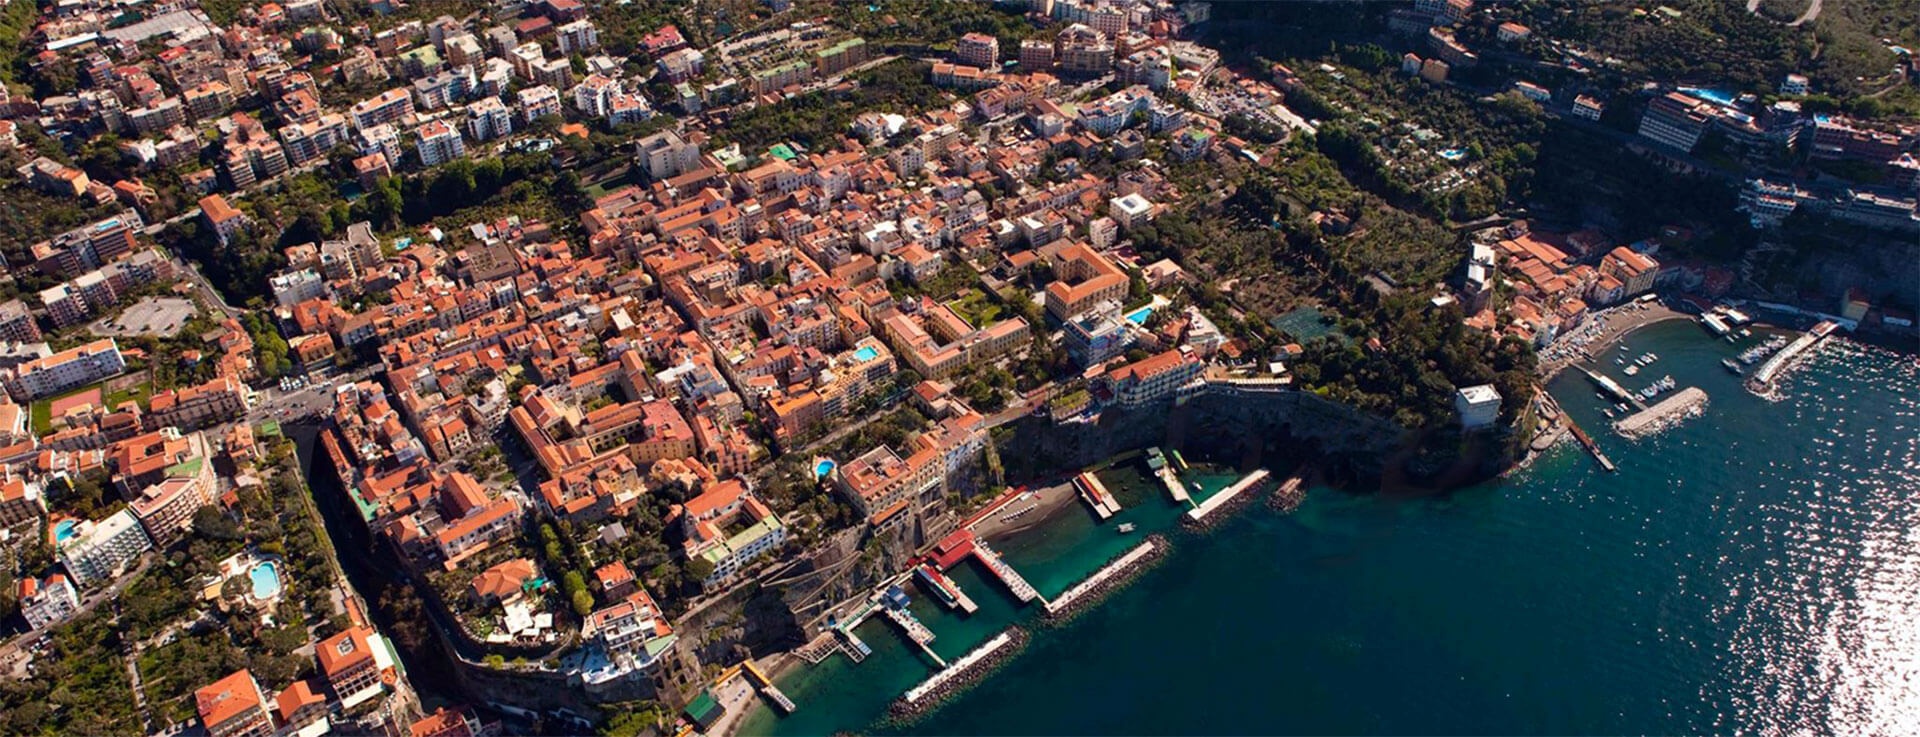 Sorrento seen from above